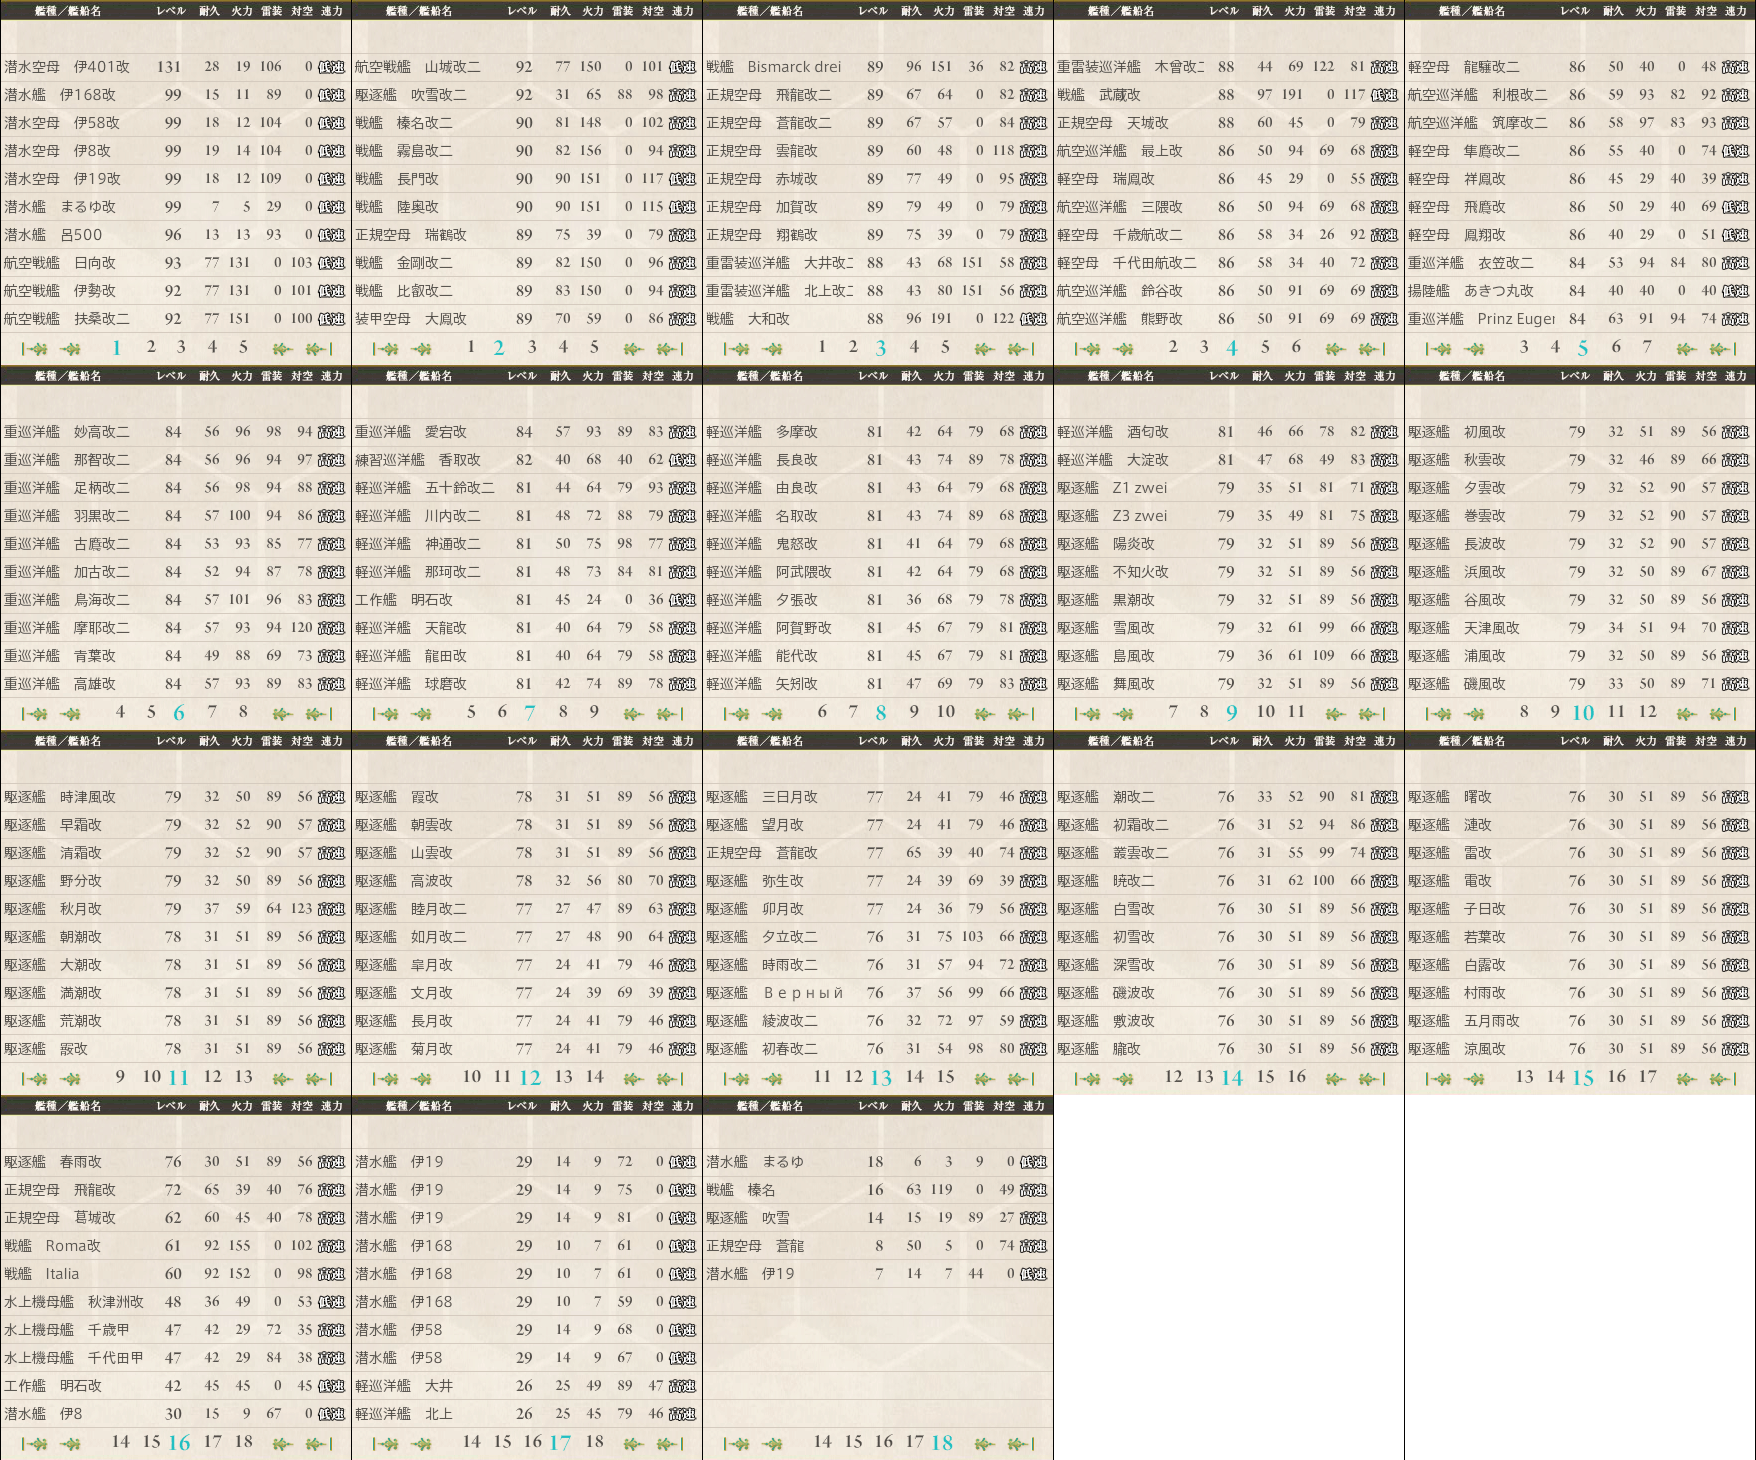 data.kancolle.levelsort.20150712.png